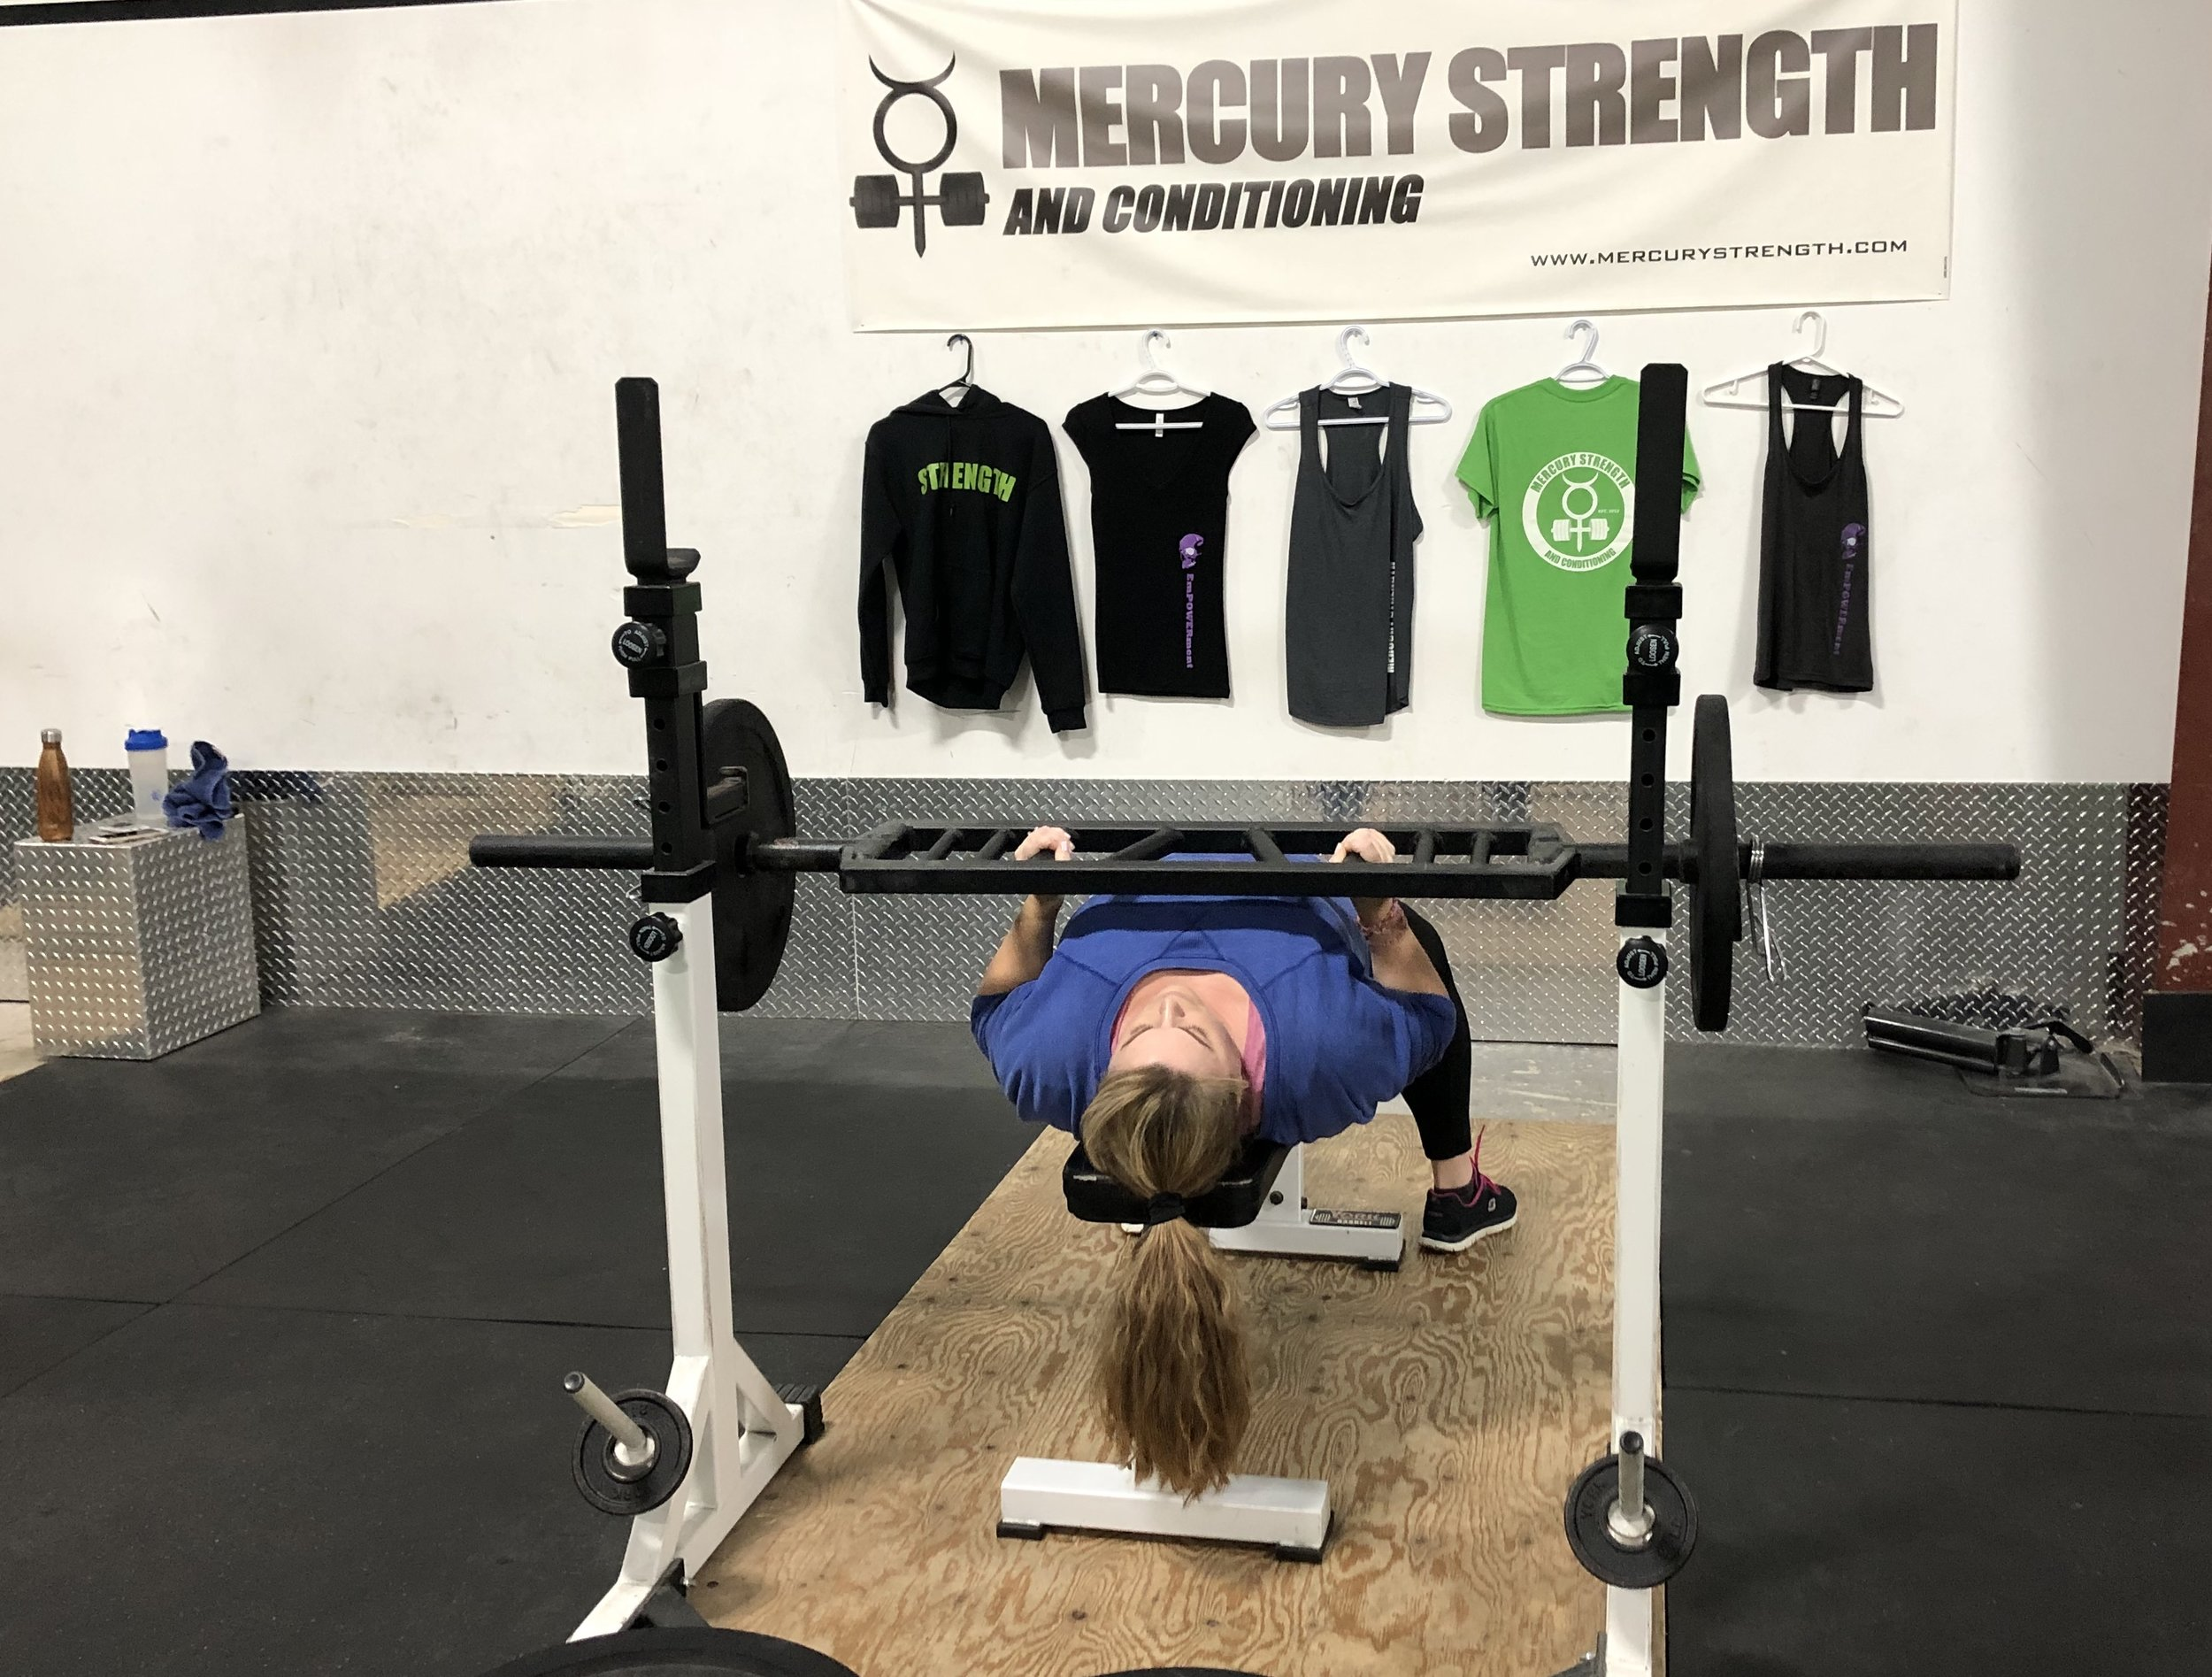 Tara using the Swiss bar for some bench press while recovering from a shoulder injury. We have the tools and expertise to get you moving like you did pre-injury.